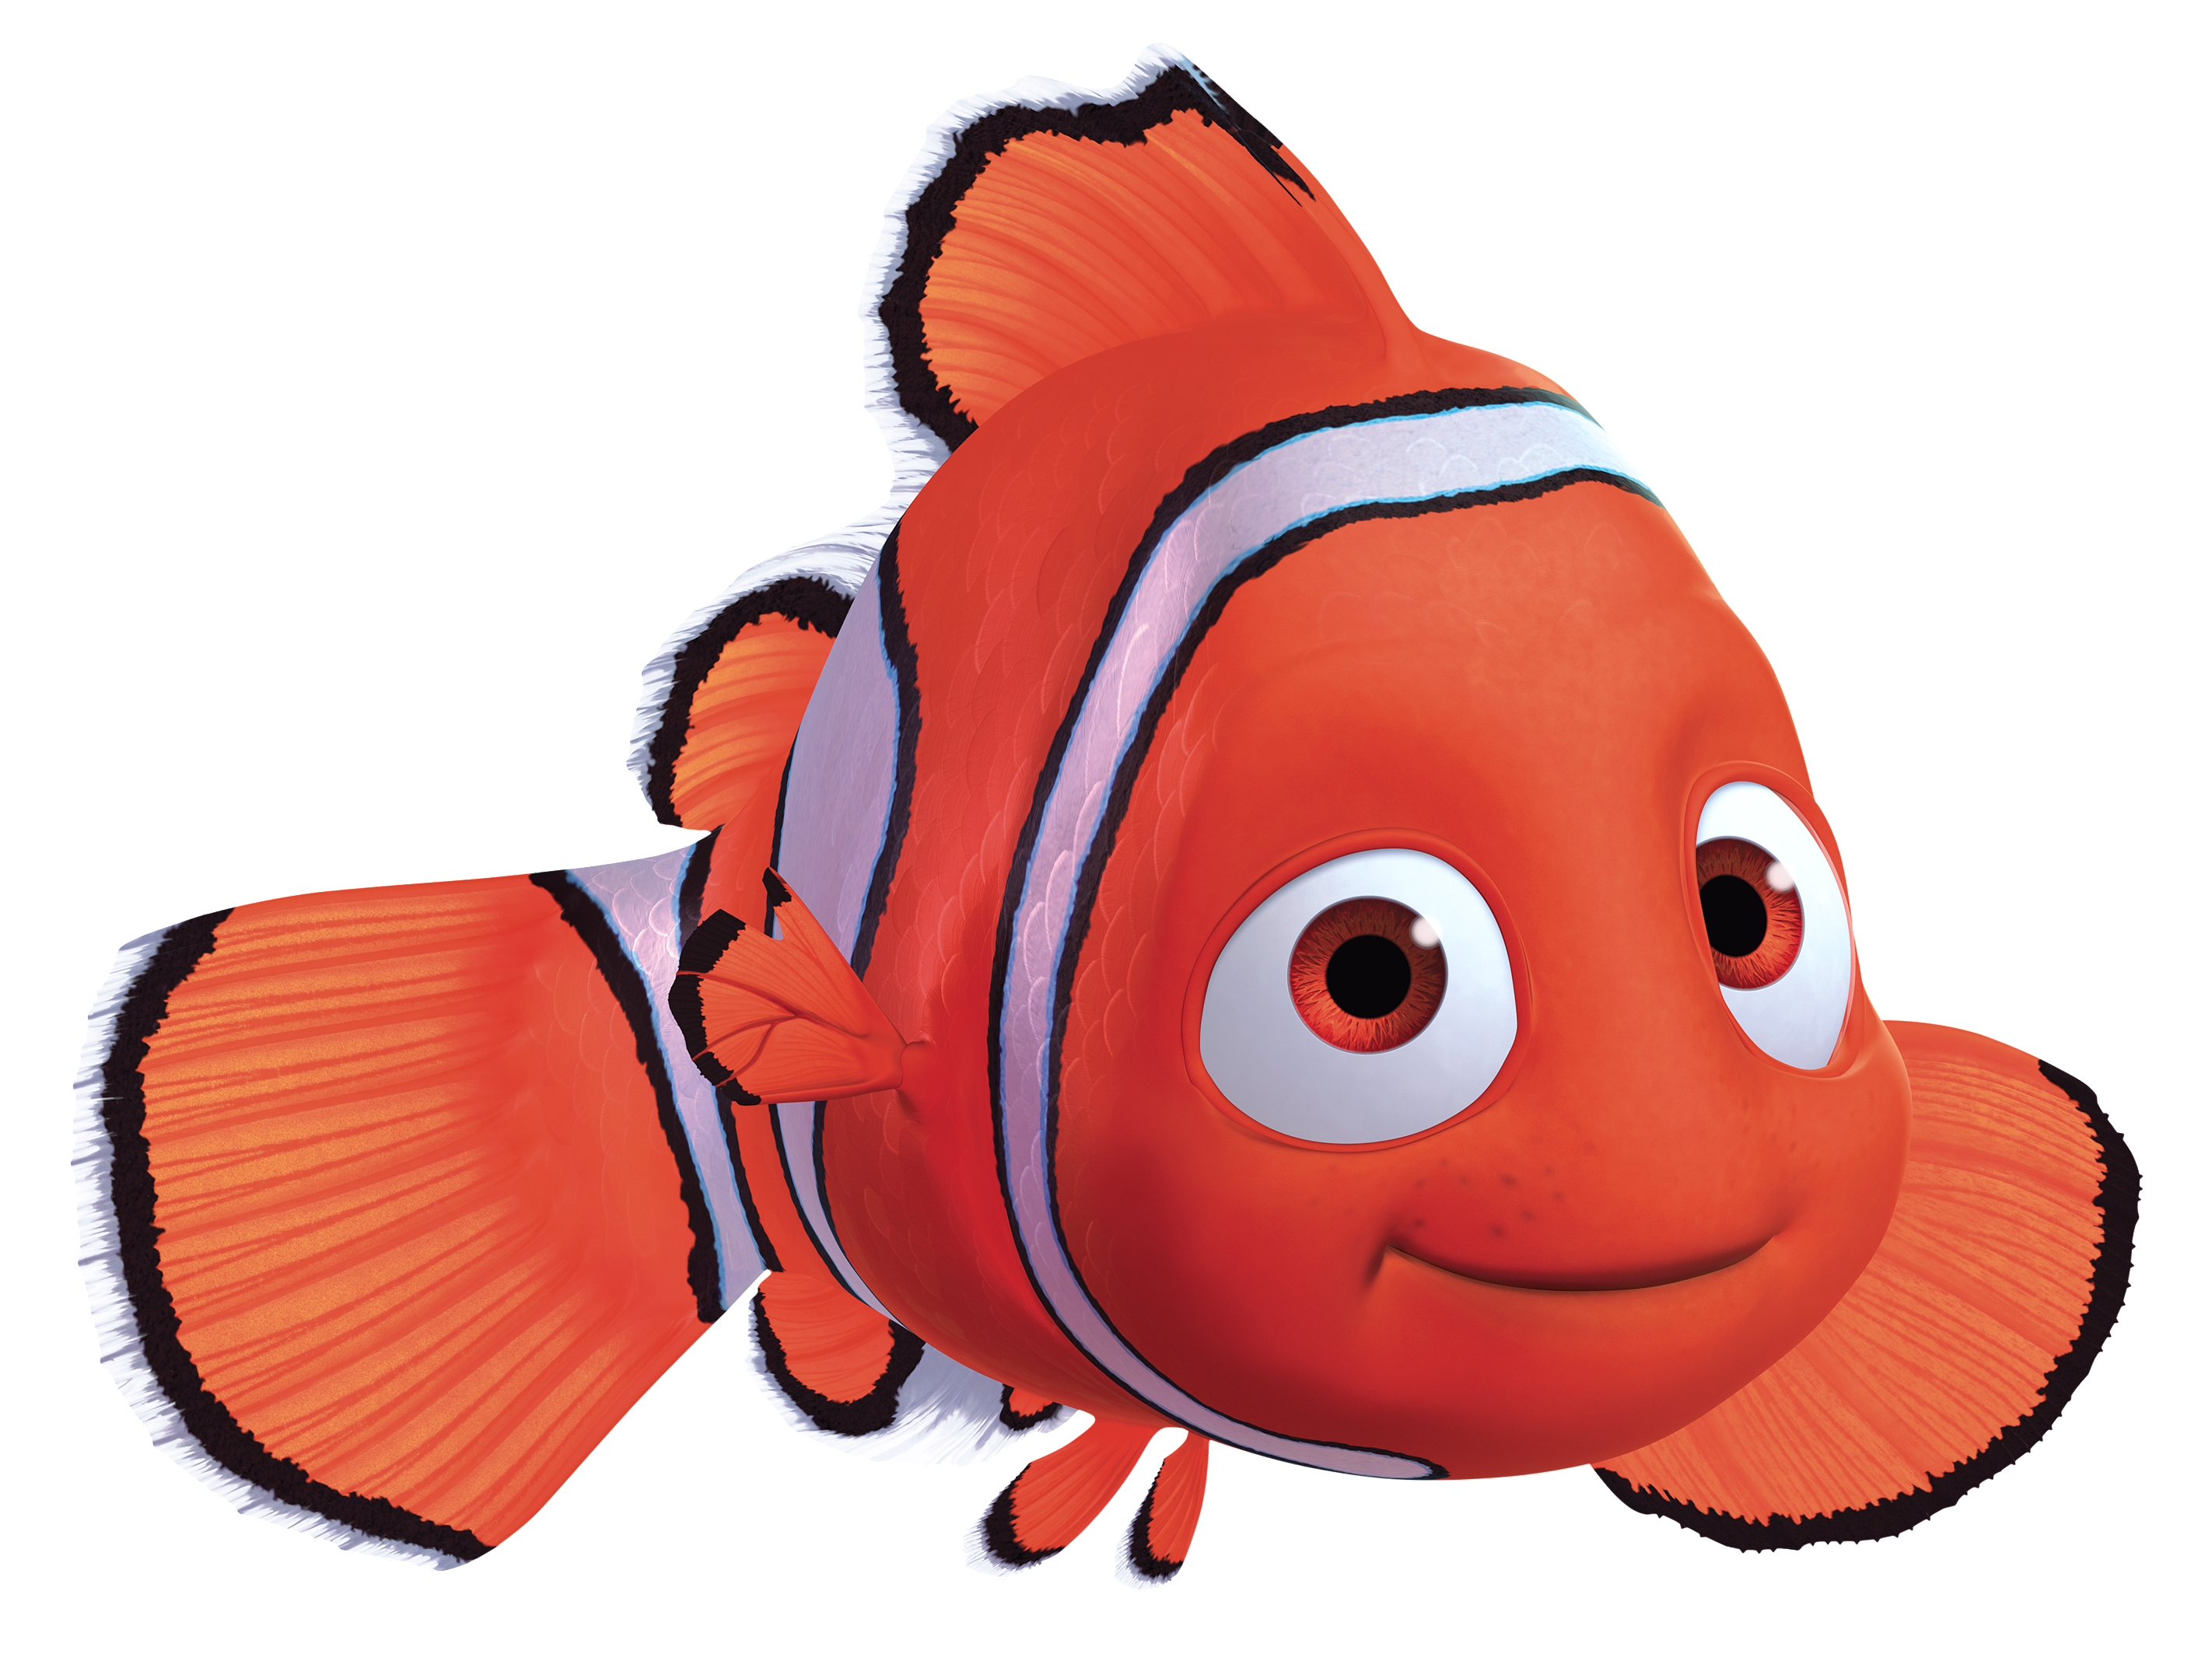 12 Nemo Cartoon Free Cliparts That You Can Download To You Computer